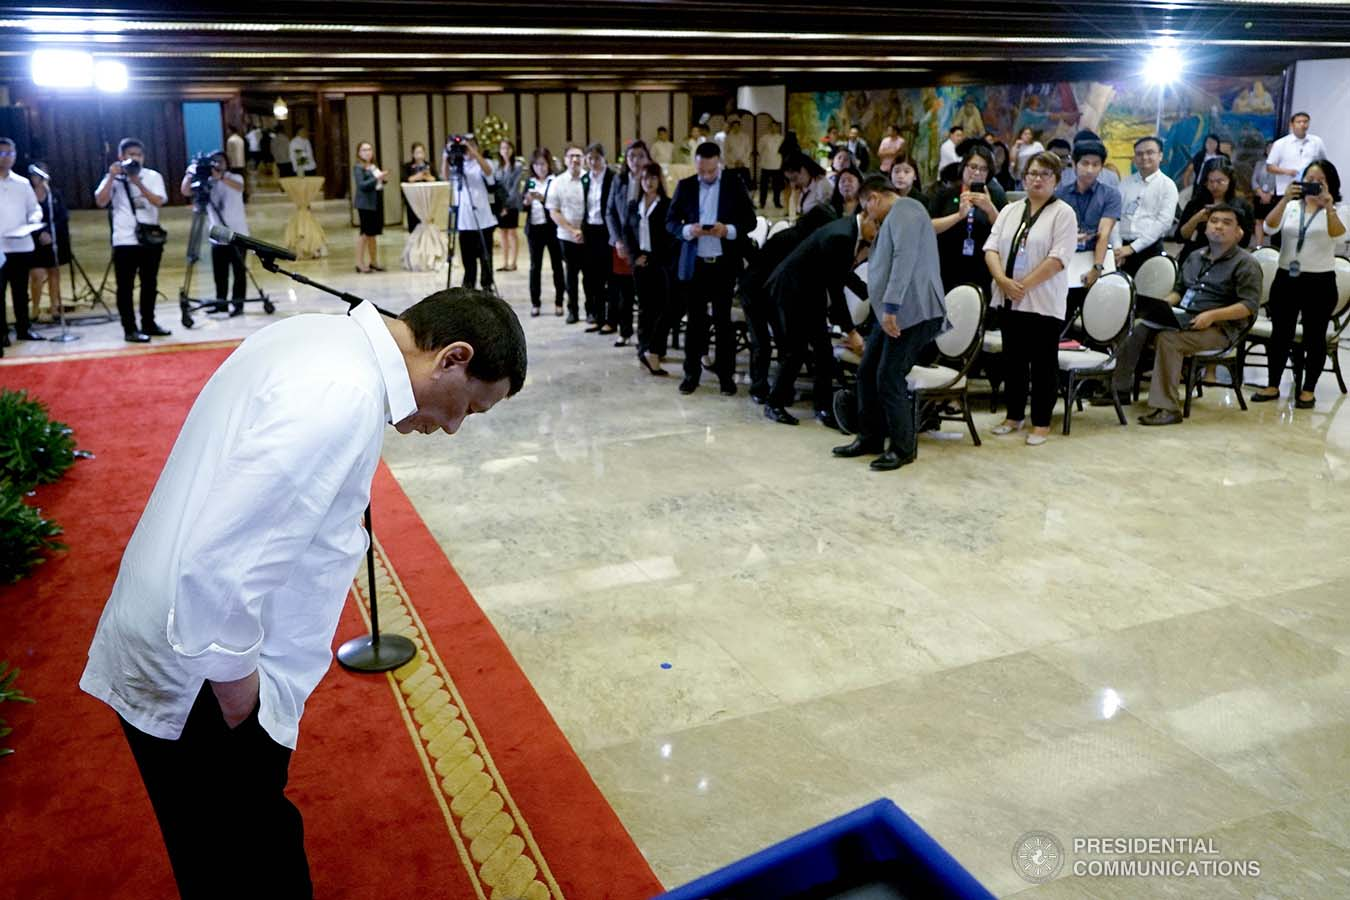 President Rodrigo Roa Duterte takes a bow before the Malacañang Press Corps, Presidential Photojournalists Association, and Malacañang Cameramen Association during the oath-taking ceremony of their officers at the Malacañan Palace on September 10, 2019. KING RODRIGUEZ/PRESIDENTIAL PHOTO